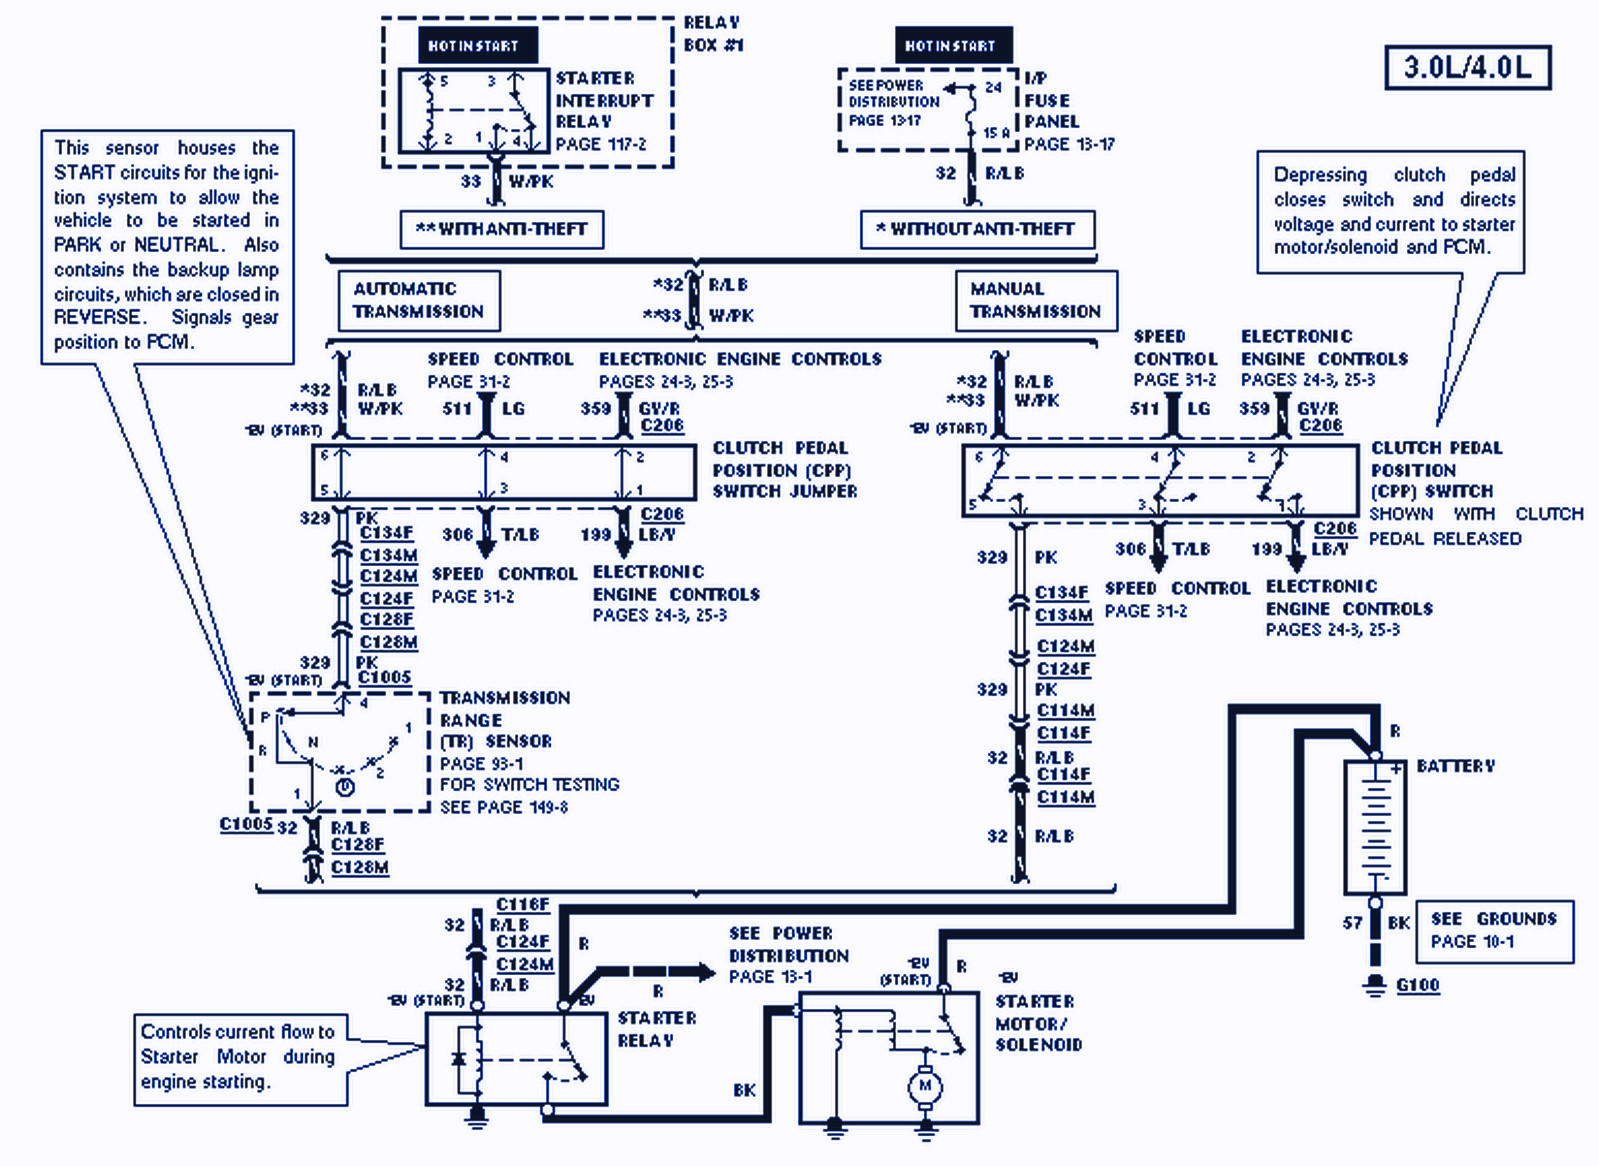 Diagram 1992 Ford Ranger Wiring Diagram Full Version Hd Quality Wiring Diagram Isheltop Fanfaradilegnano It